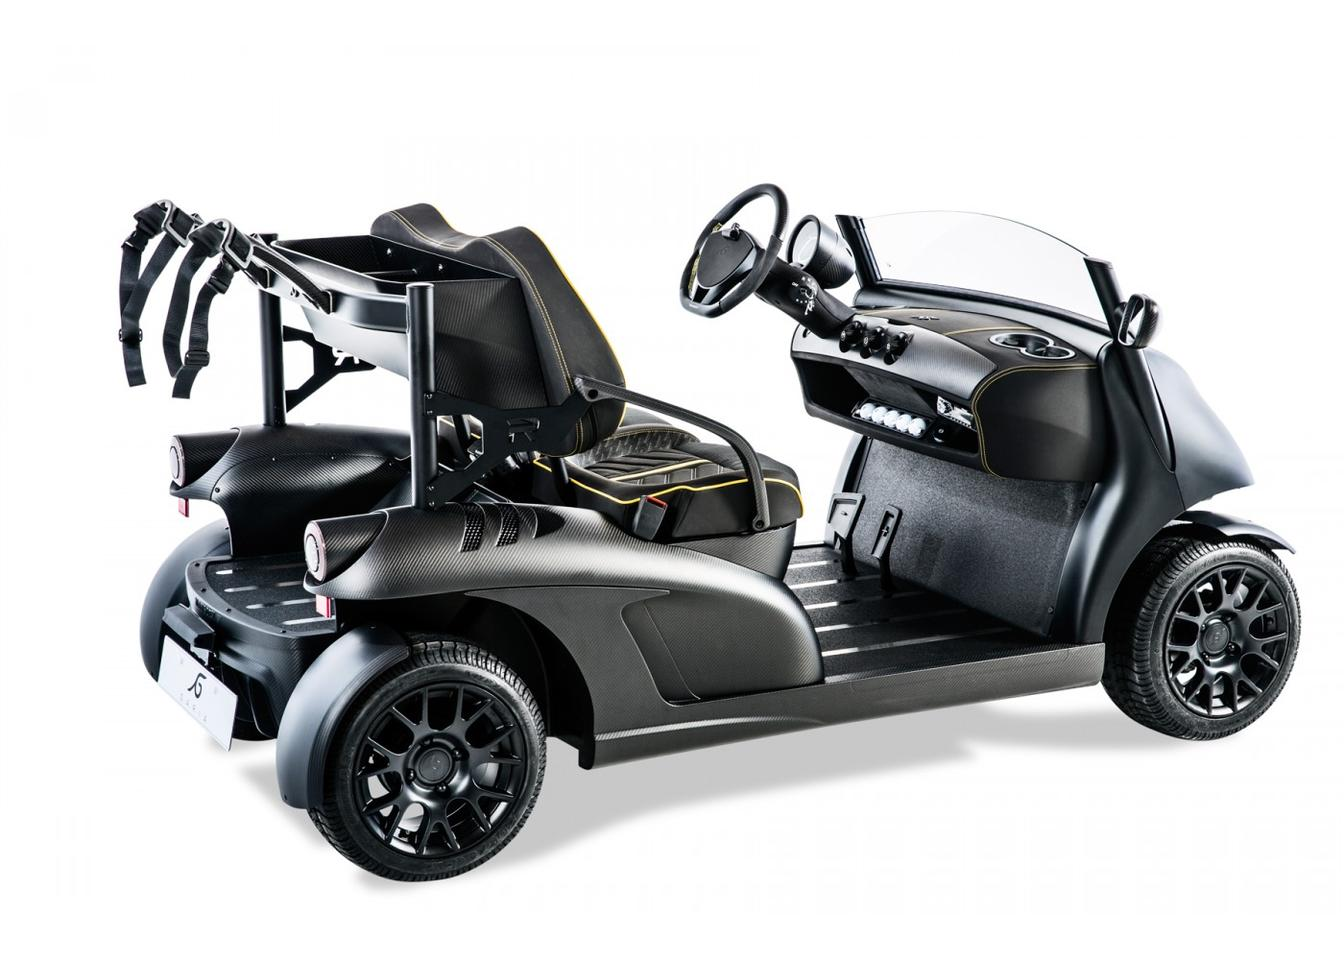 Garia teamed up with top-end luxury car customizer Mansory to create the Garia Mansory Currus